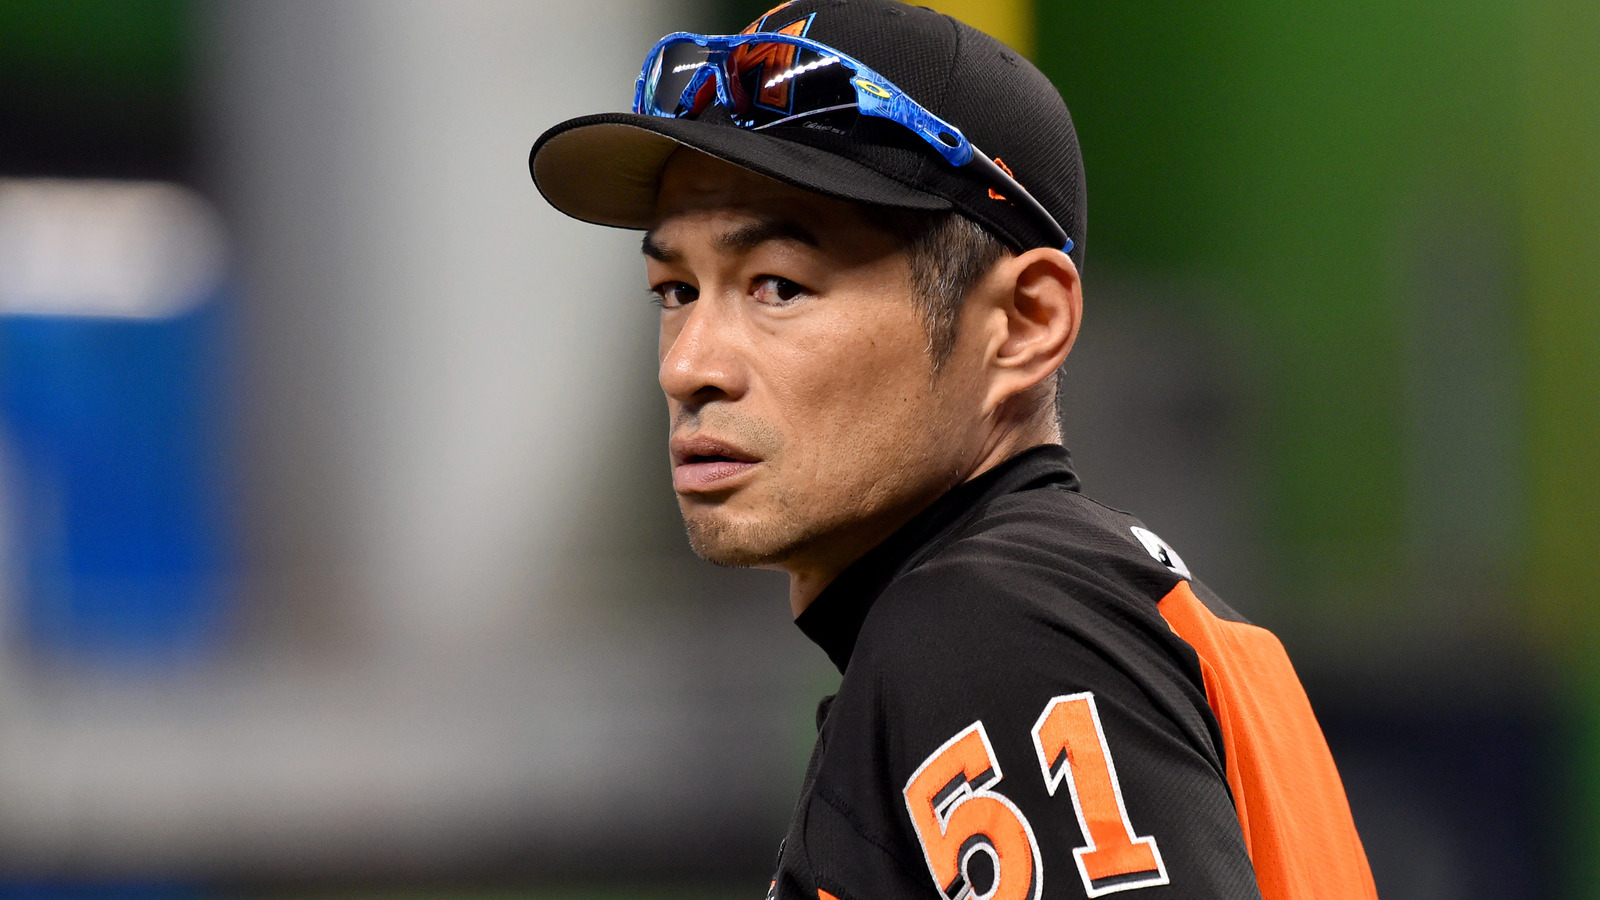 Ichiro Suzuki planning reunion with Seattle Mariners